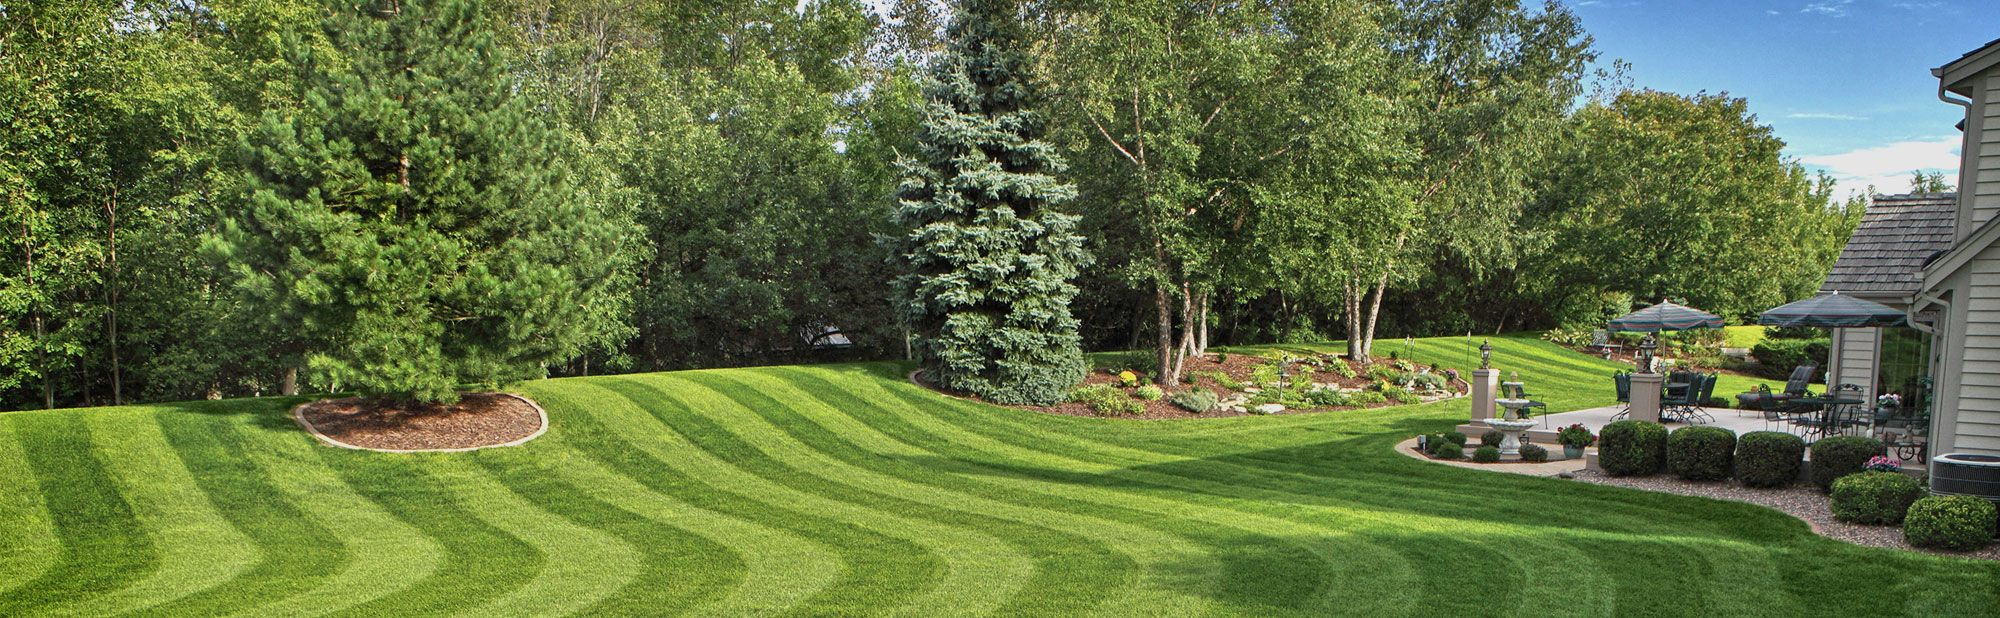 Pin by taprootlawncare on Get Ideal Lawn Maintenance